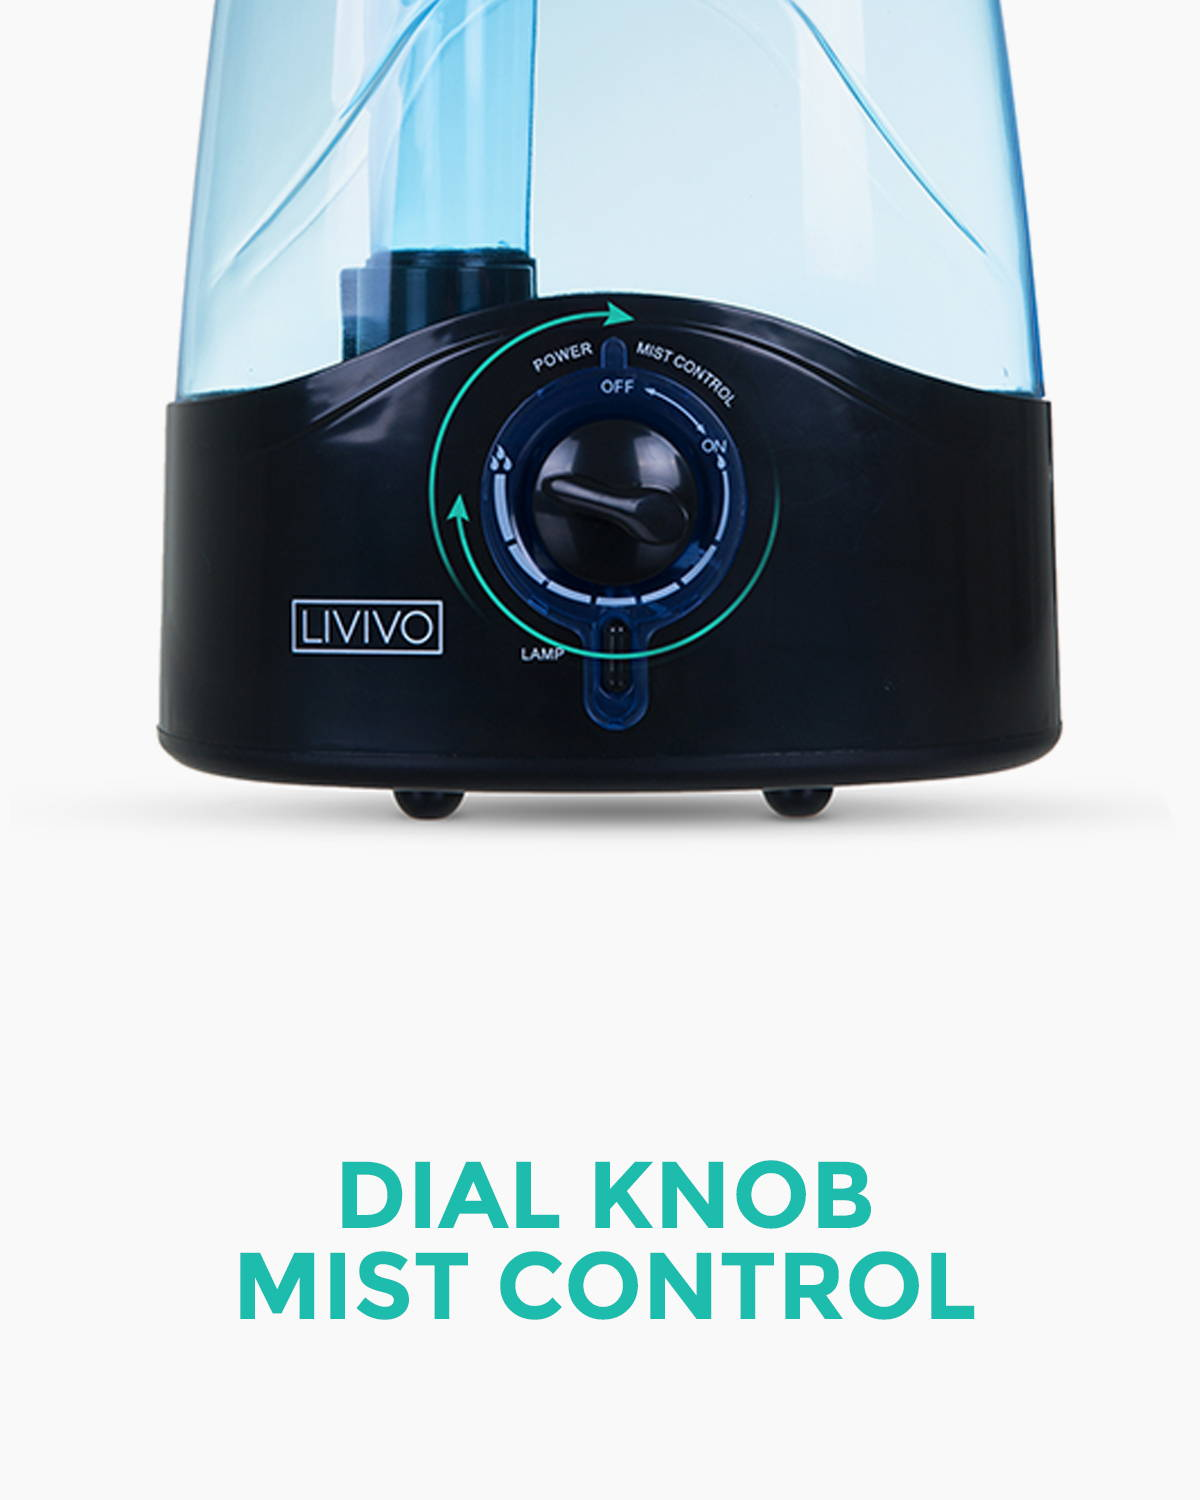 Ultrasonic Cool Mist Technology